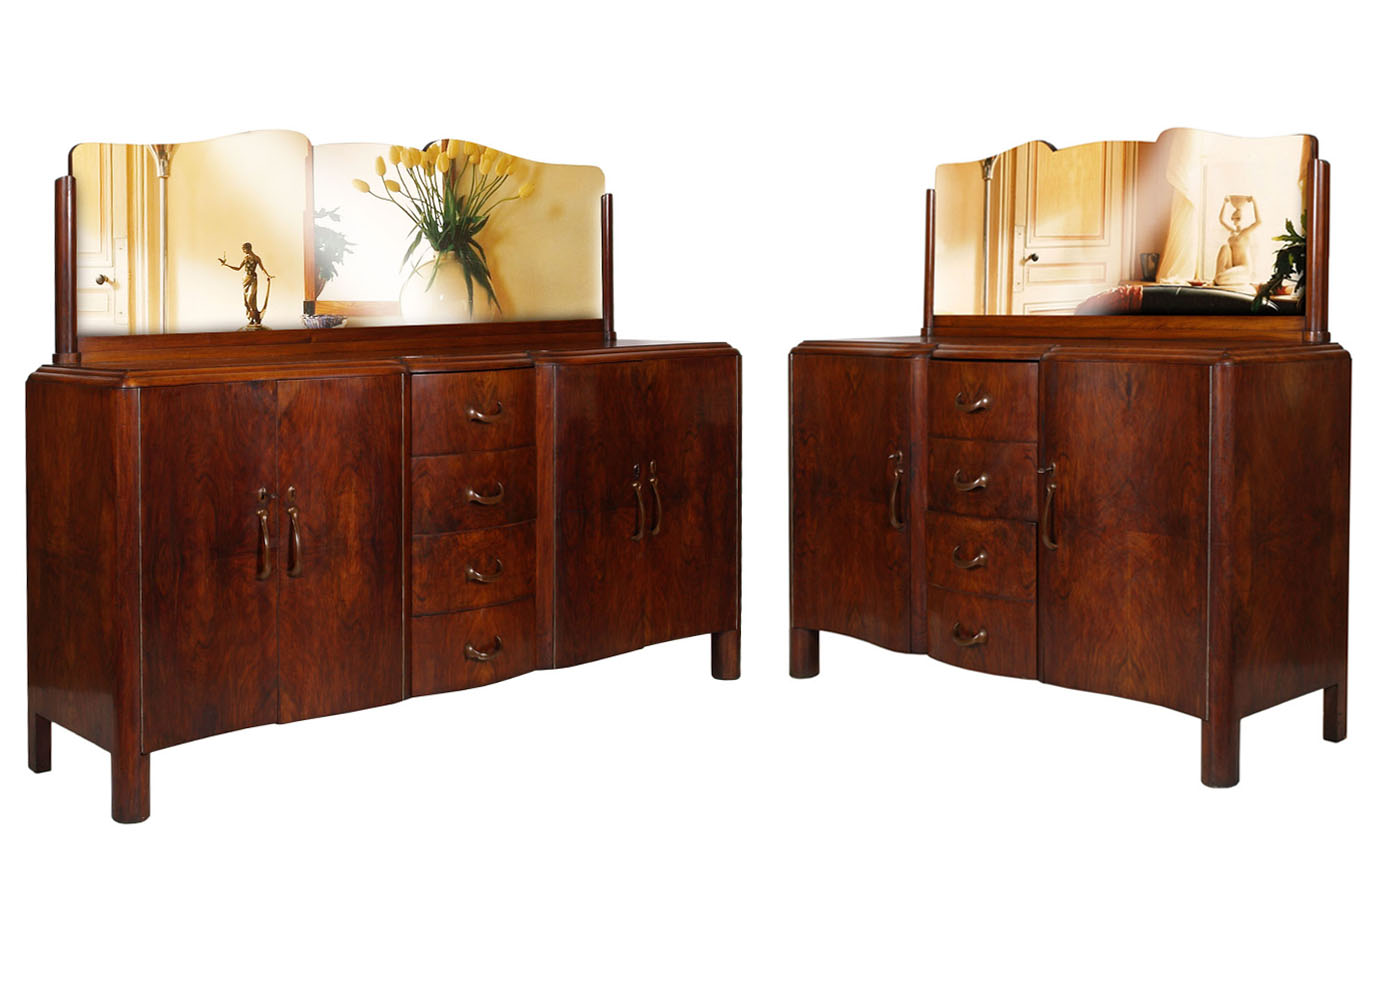 antique-art-deco-two-sideboards-1930-MAG72-1